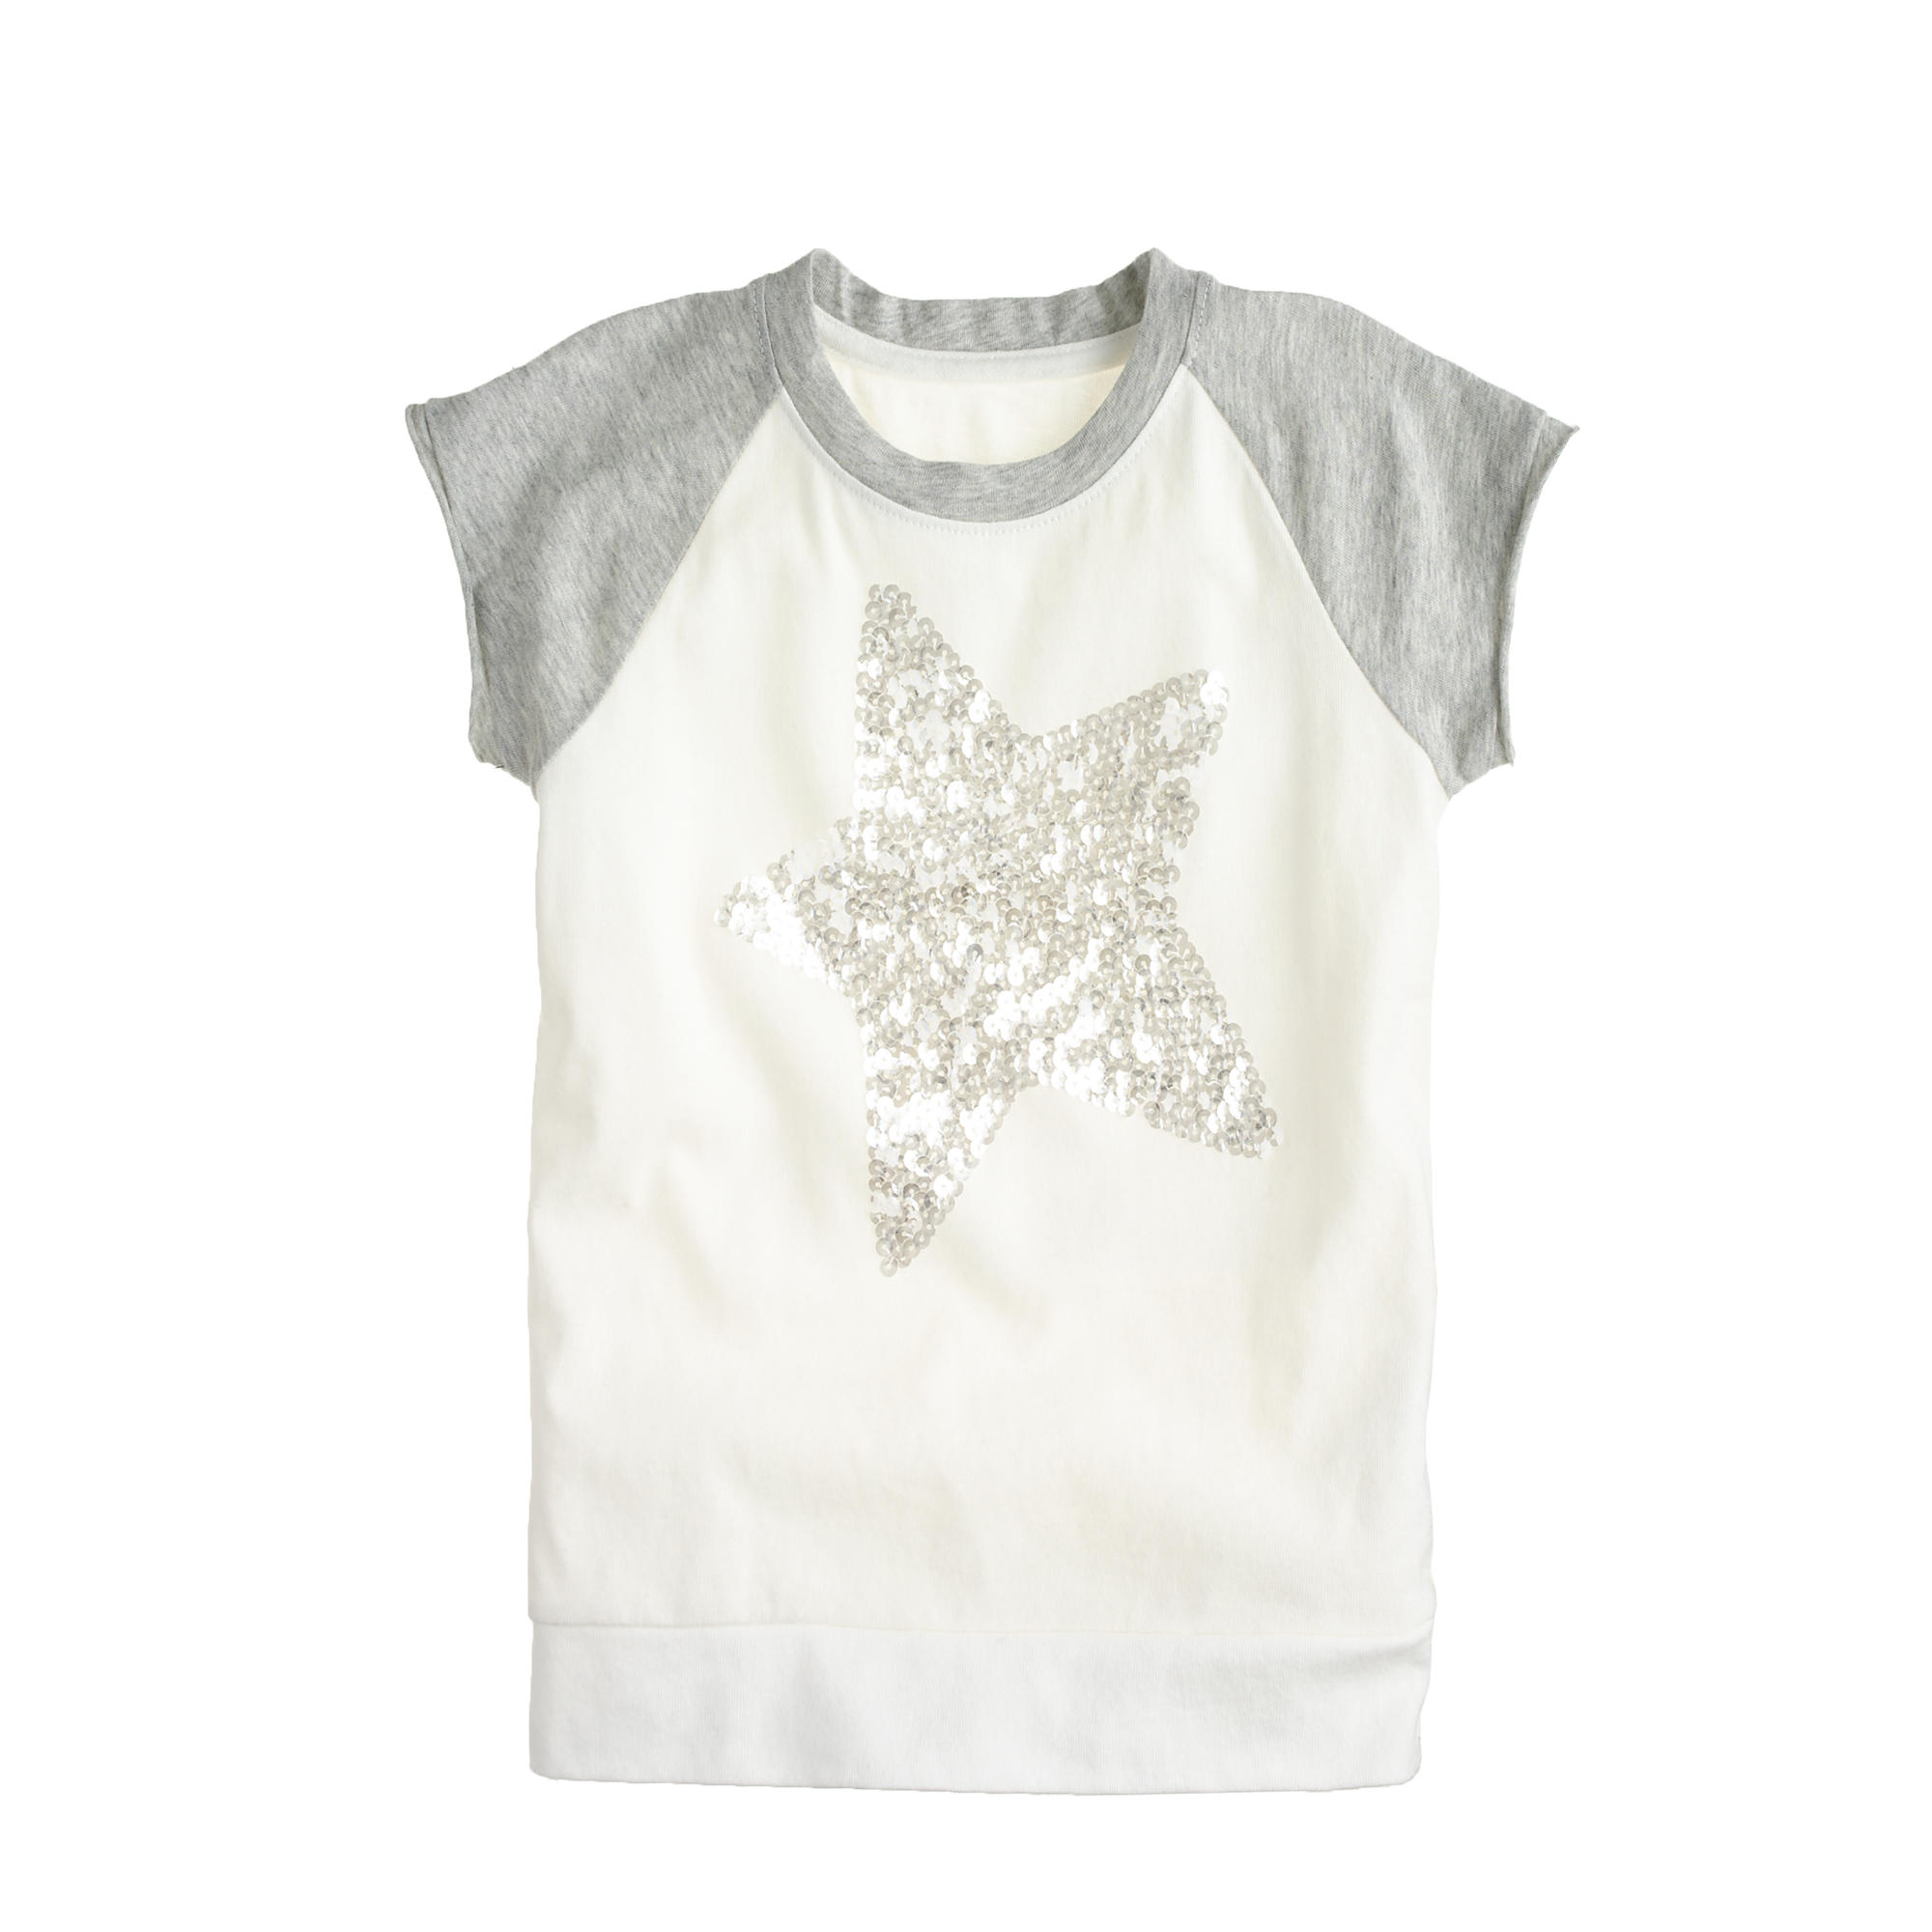 Girls 39 sequin star baseball t shirt j crew for Girls sequin t shirt